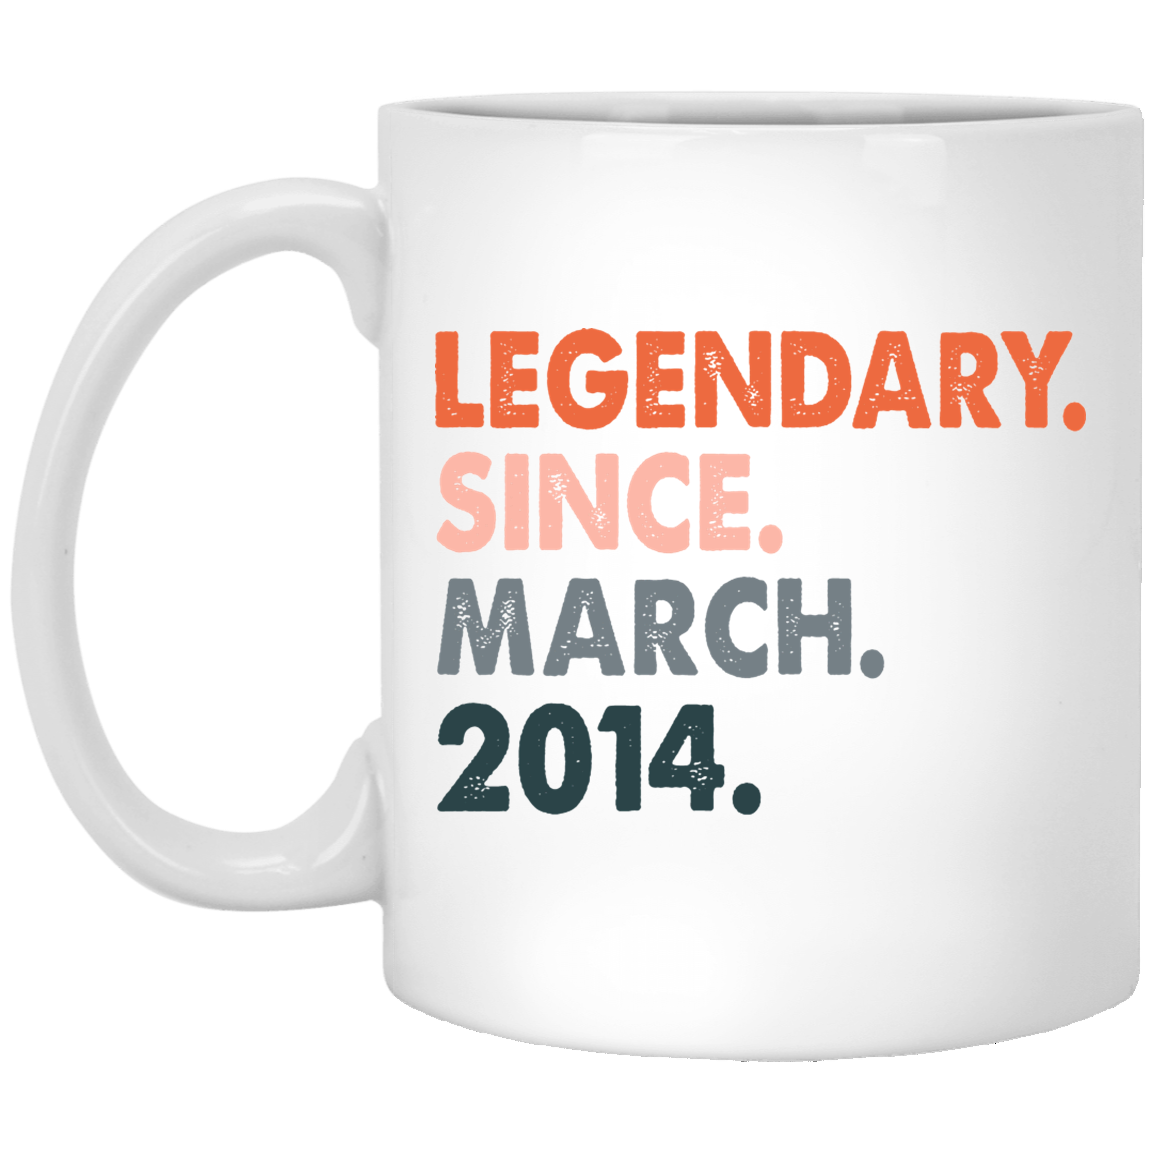 7th-Birthday-Ideas-for-Women-and-Men-Legendary-Since-March-2014 Funny Quotes Coffee Mug 99promocode